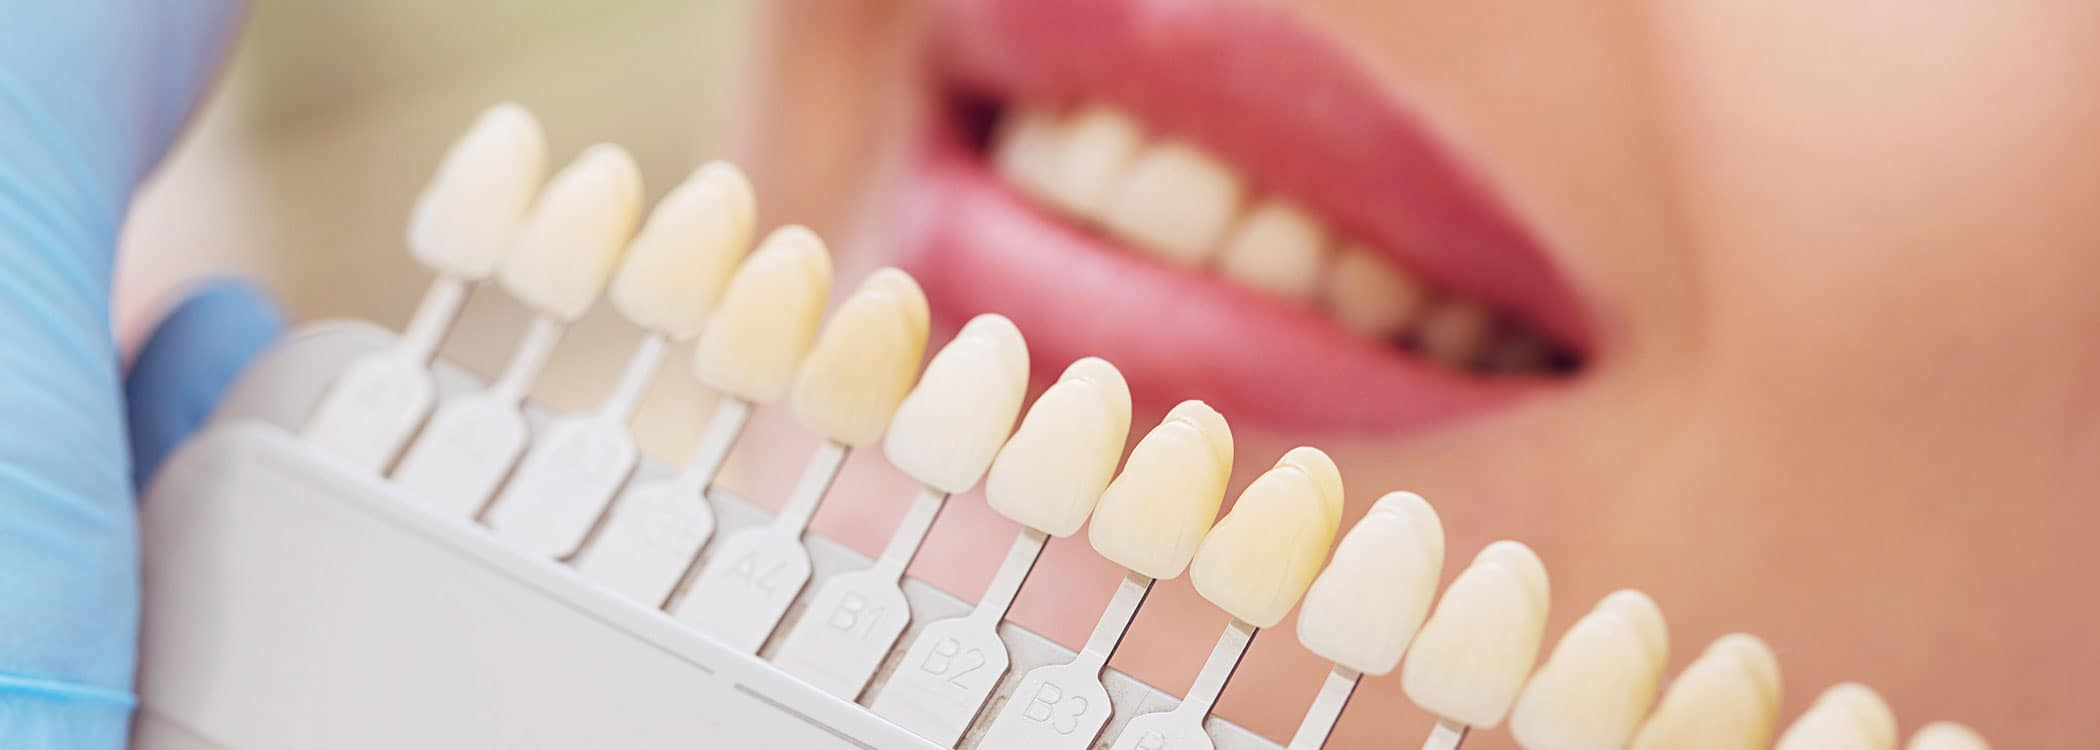 Dental implants - Color samples.